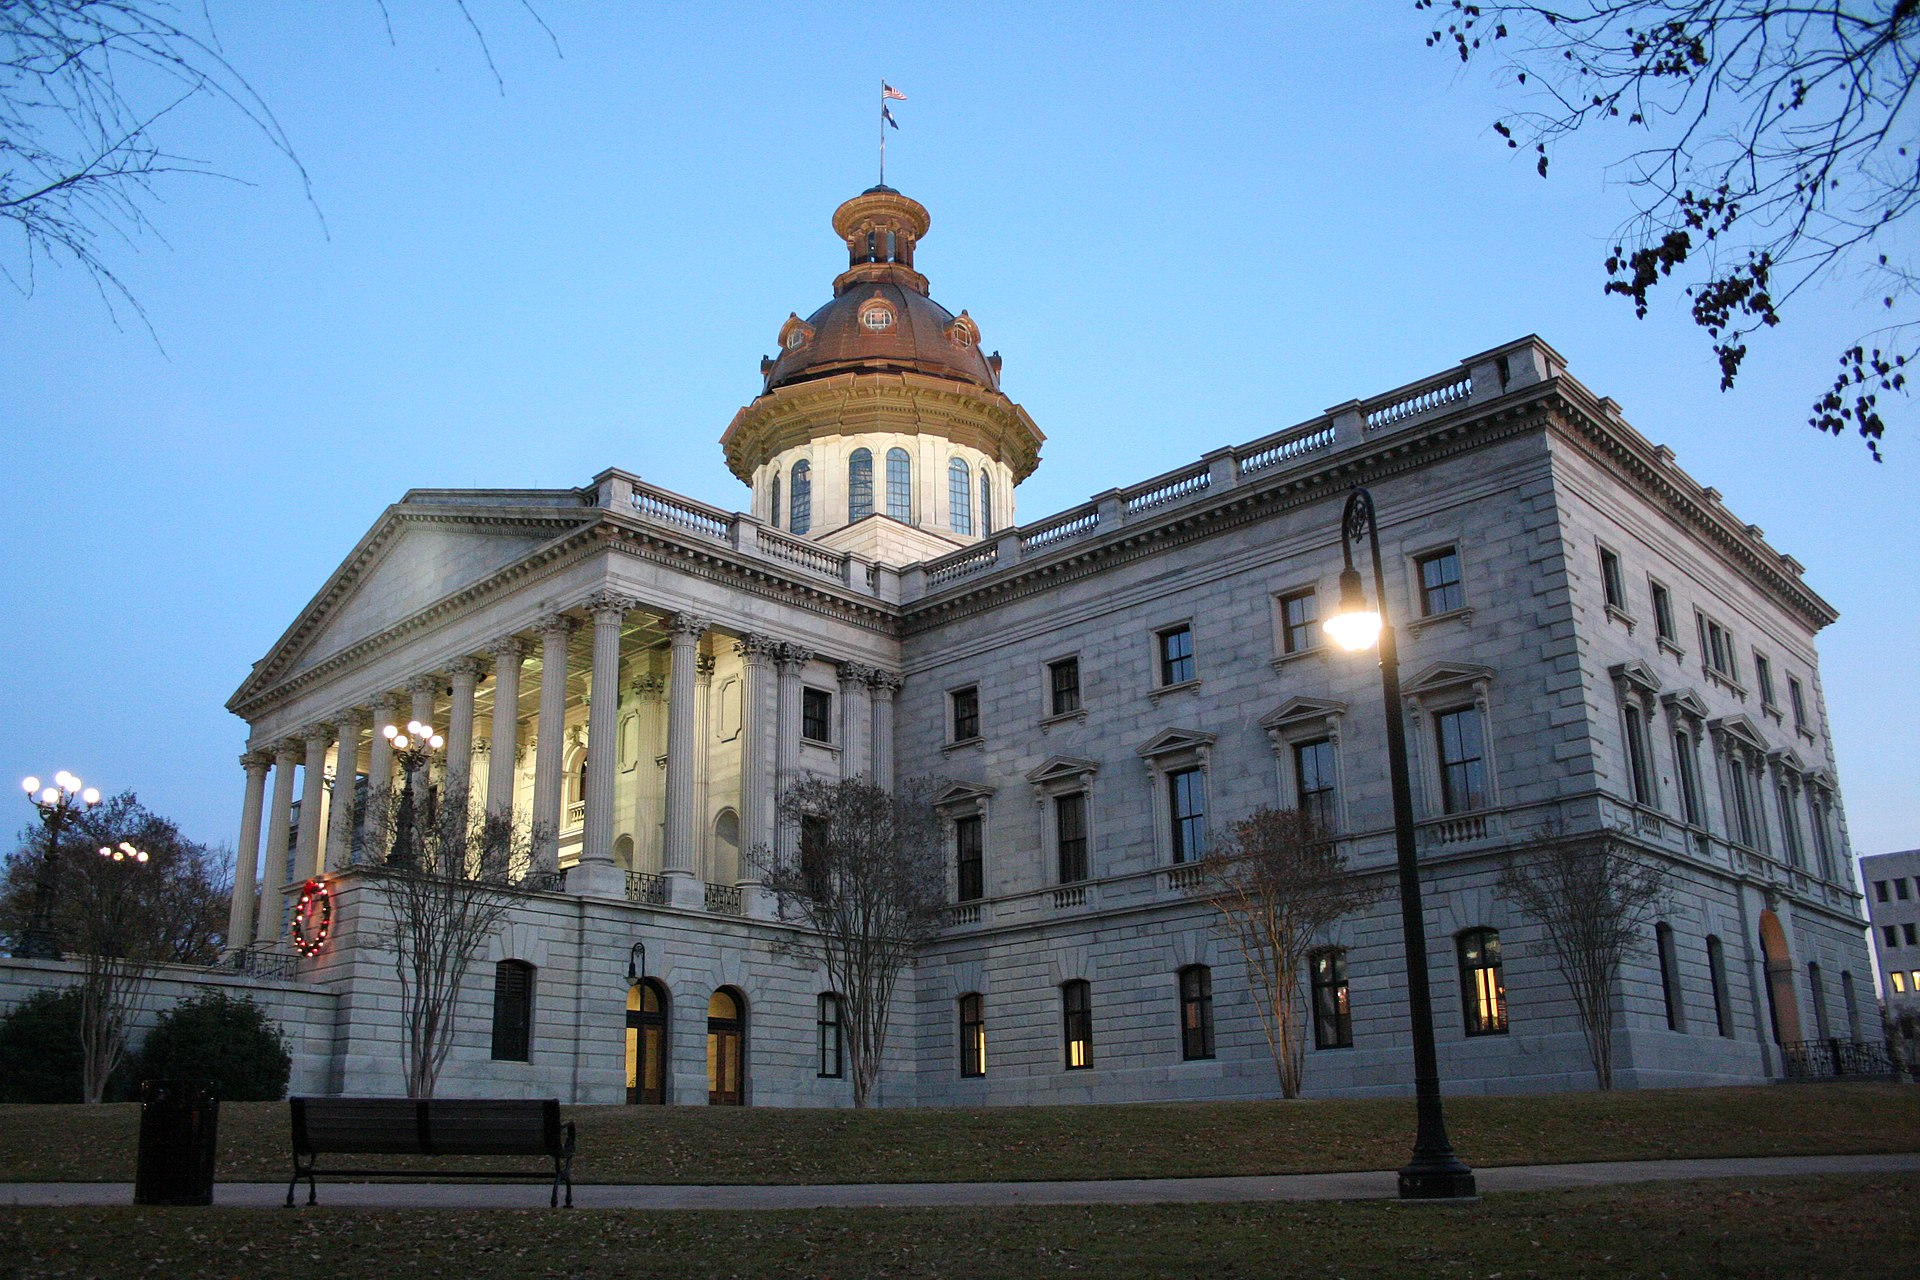 South carolina state house wikipedia for House builders in south carolina